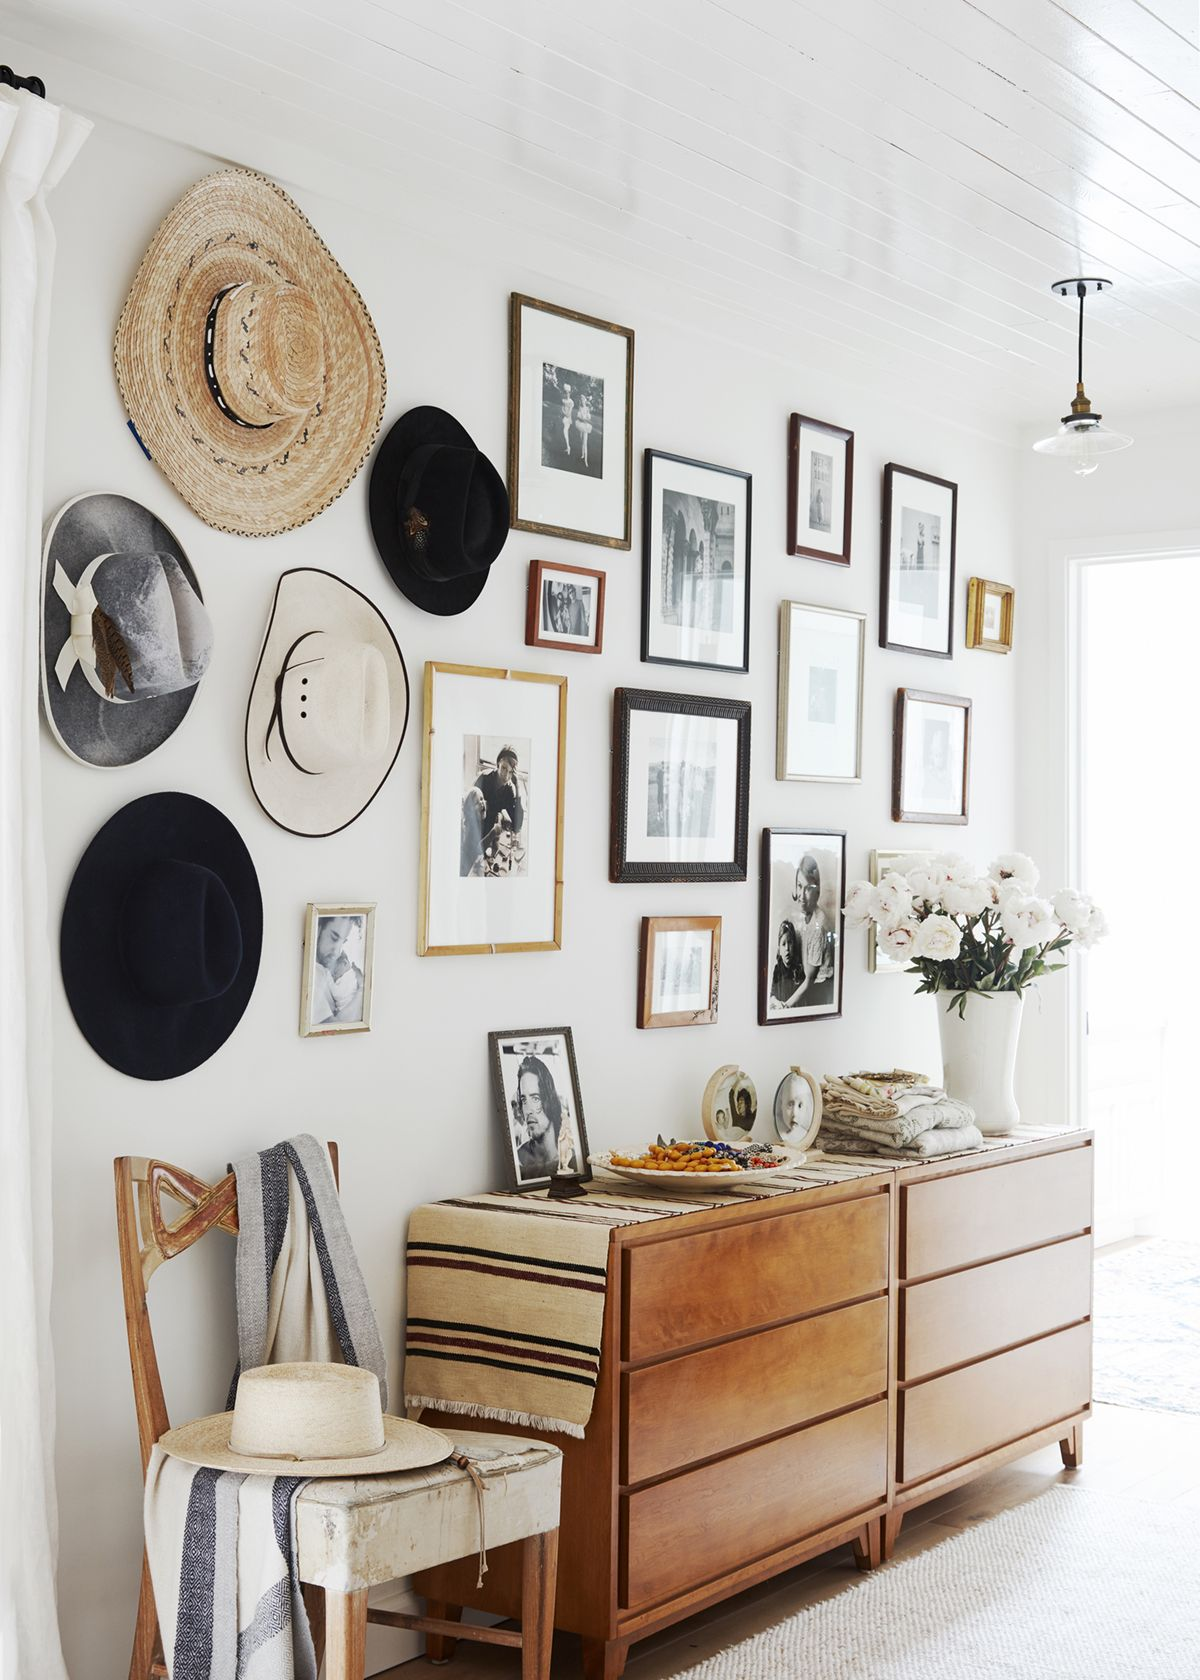 A collection of hats and a gallery wall surround a wooden dresser